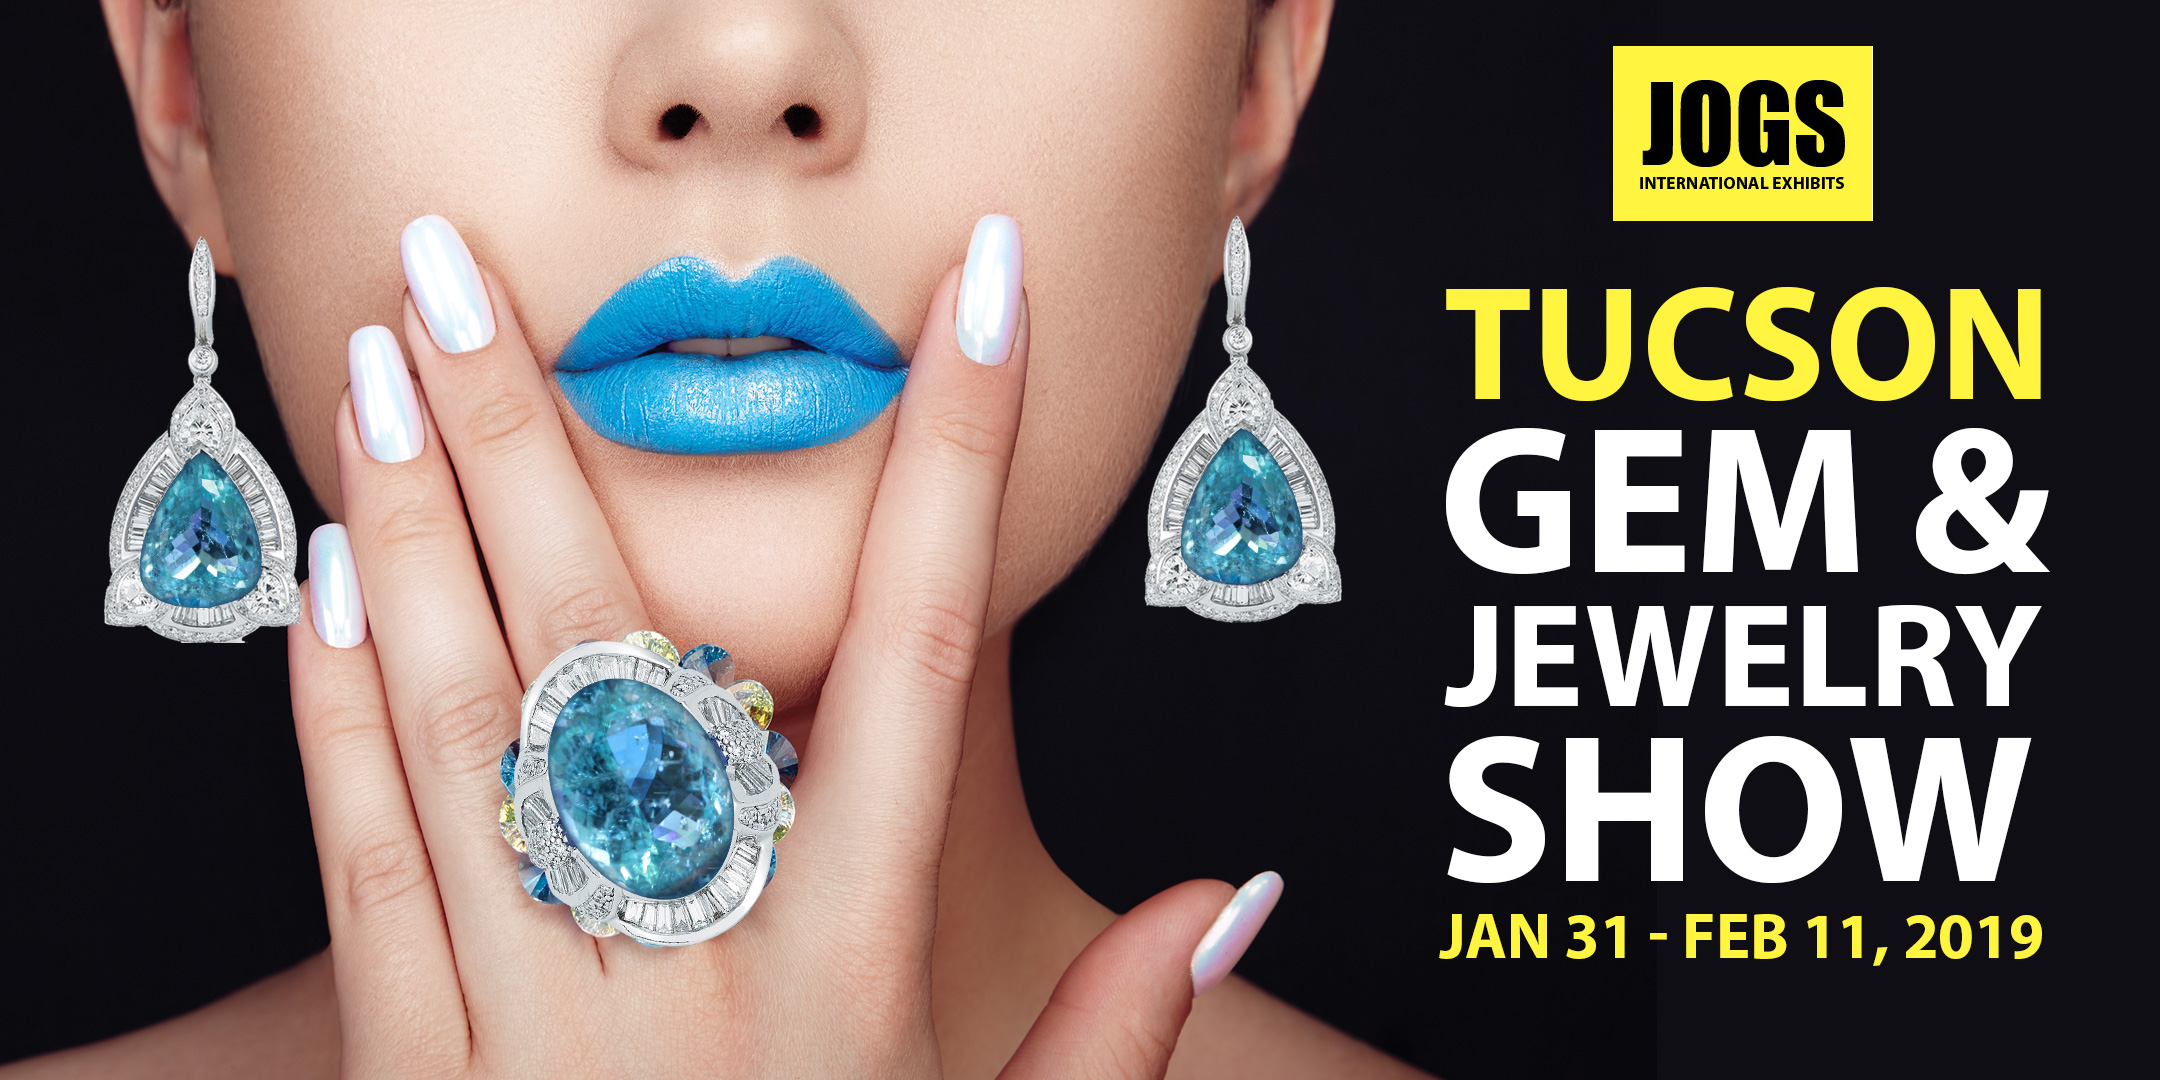 Jogs Gem Show 2020.About Jogs Gem And Jewelry Show Archives 2020 Jogs Tucson